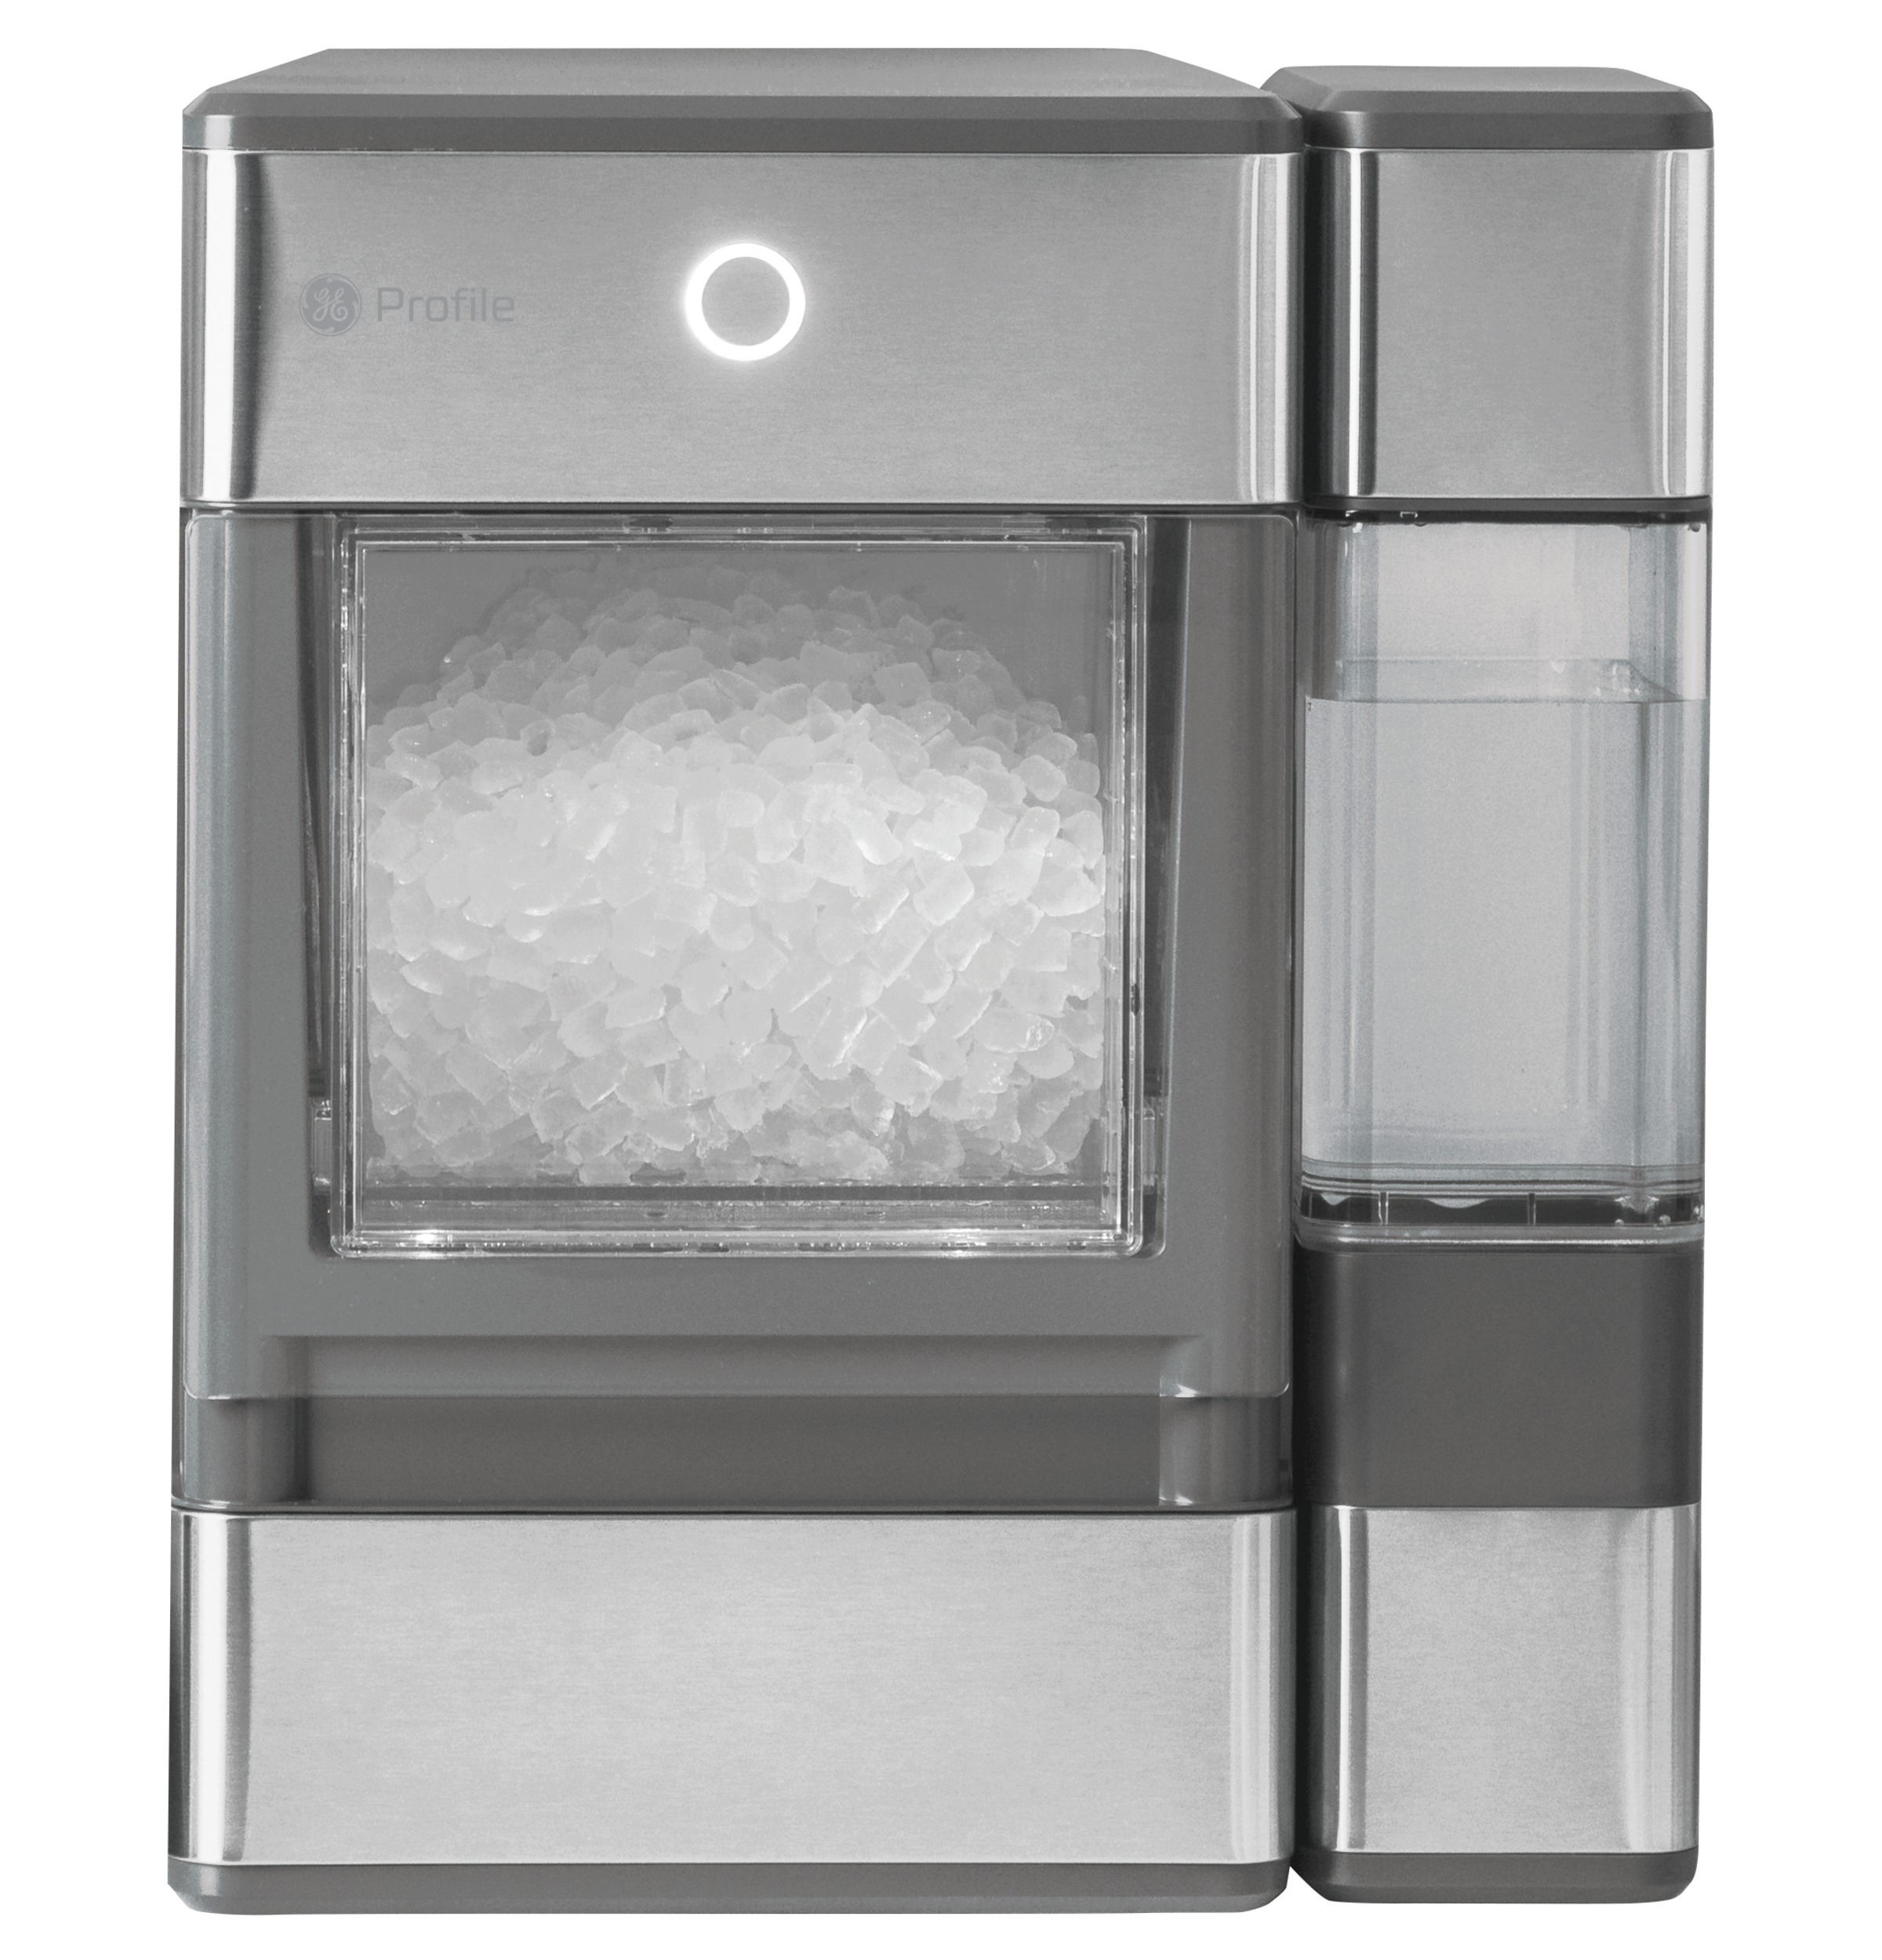 GE Profile GE Profile™ Opal Nugget Ice Maker